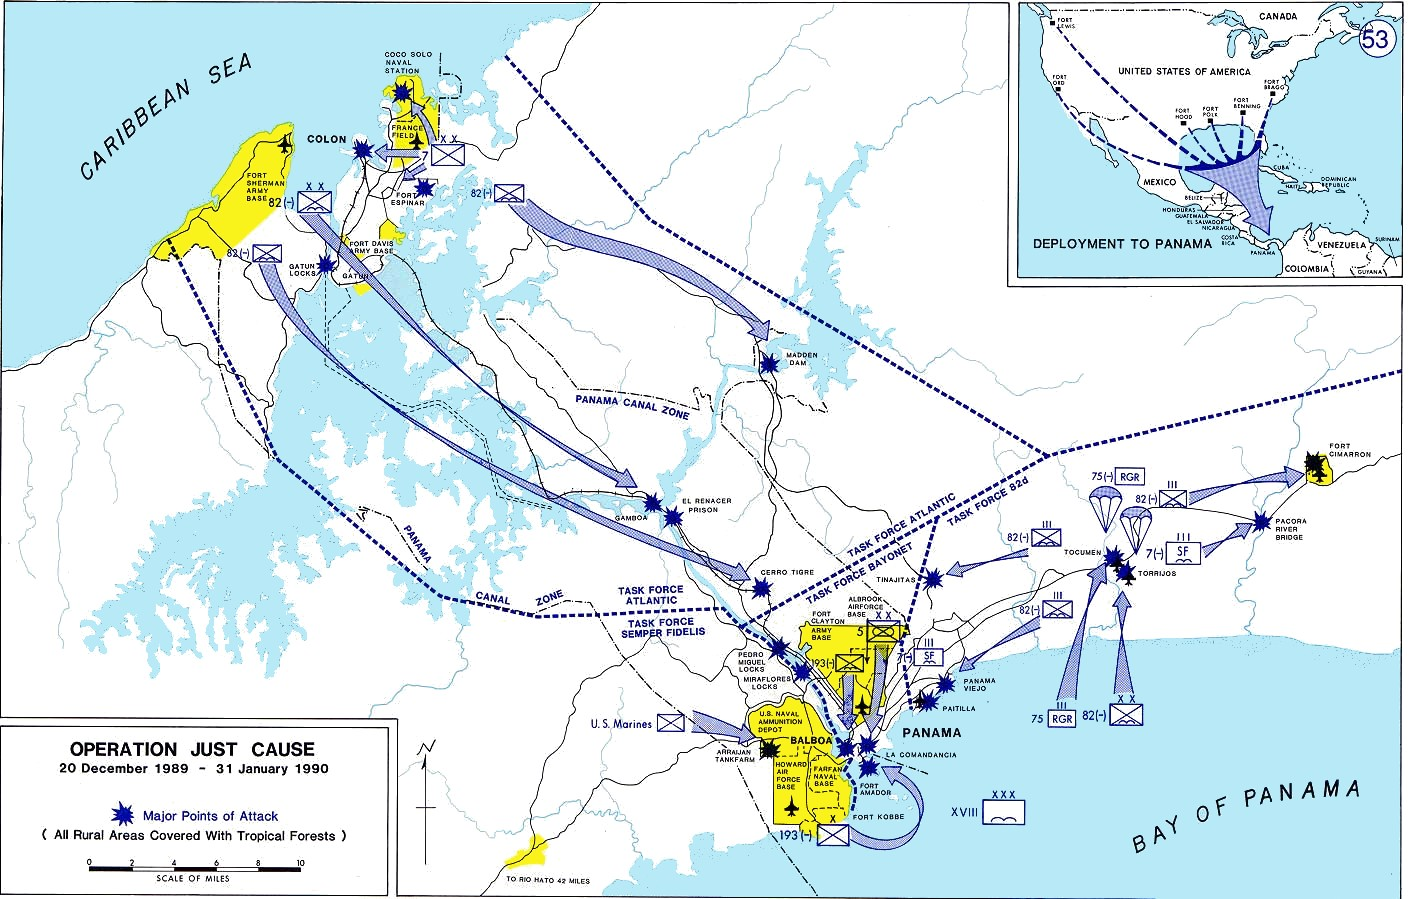 FileOperation Just Causejpg Wikimedia Commons - Us military bases overseas map